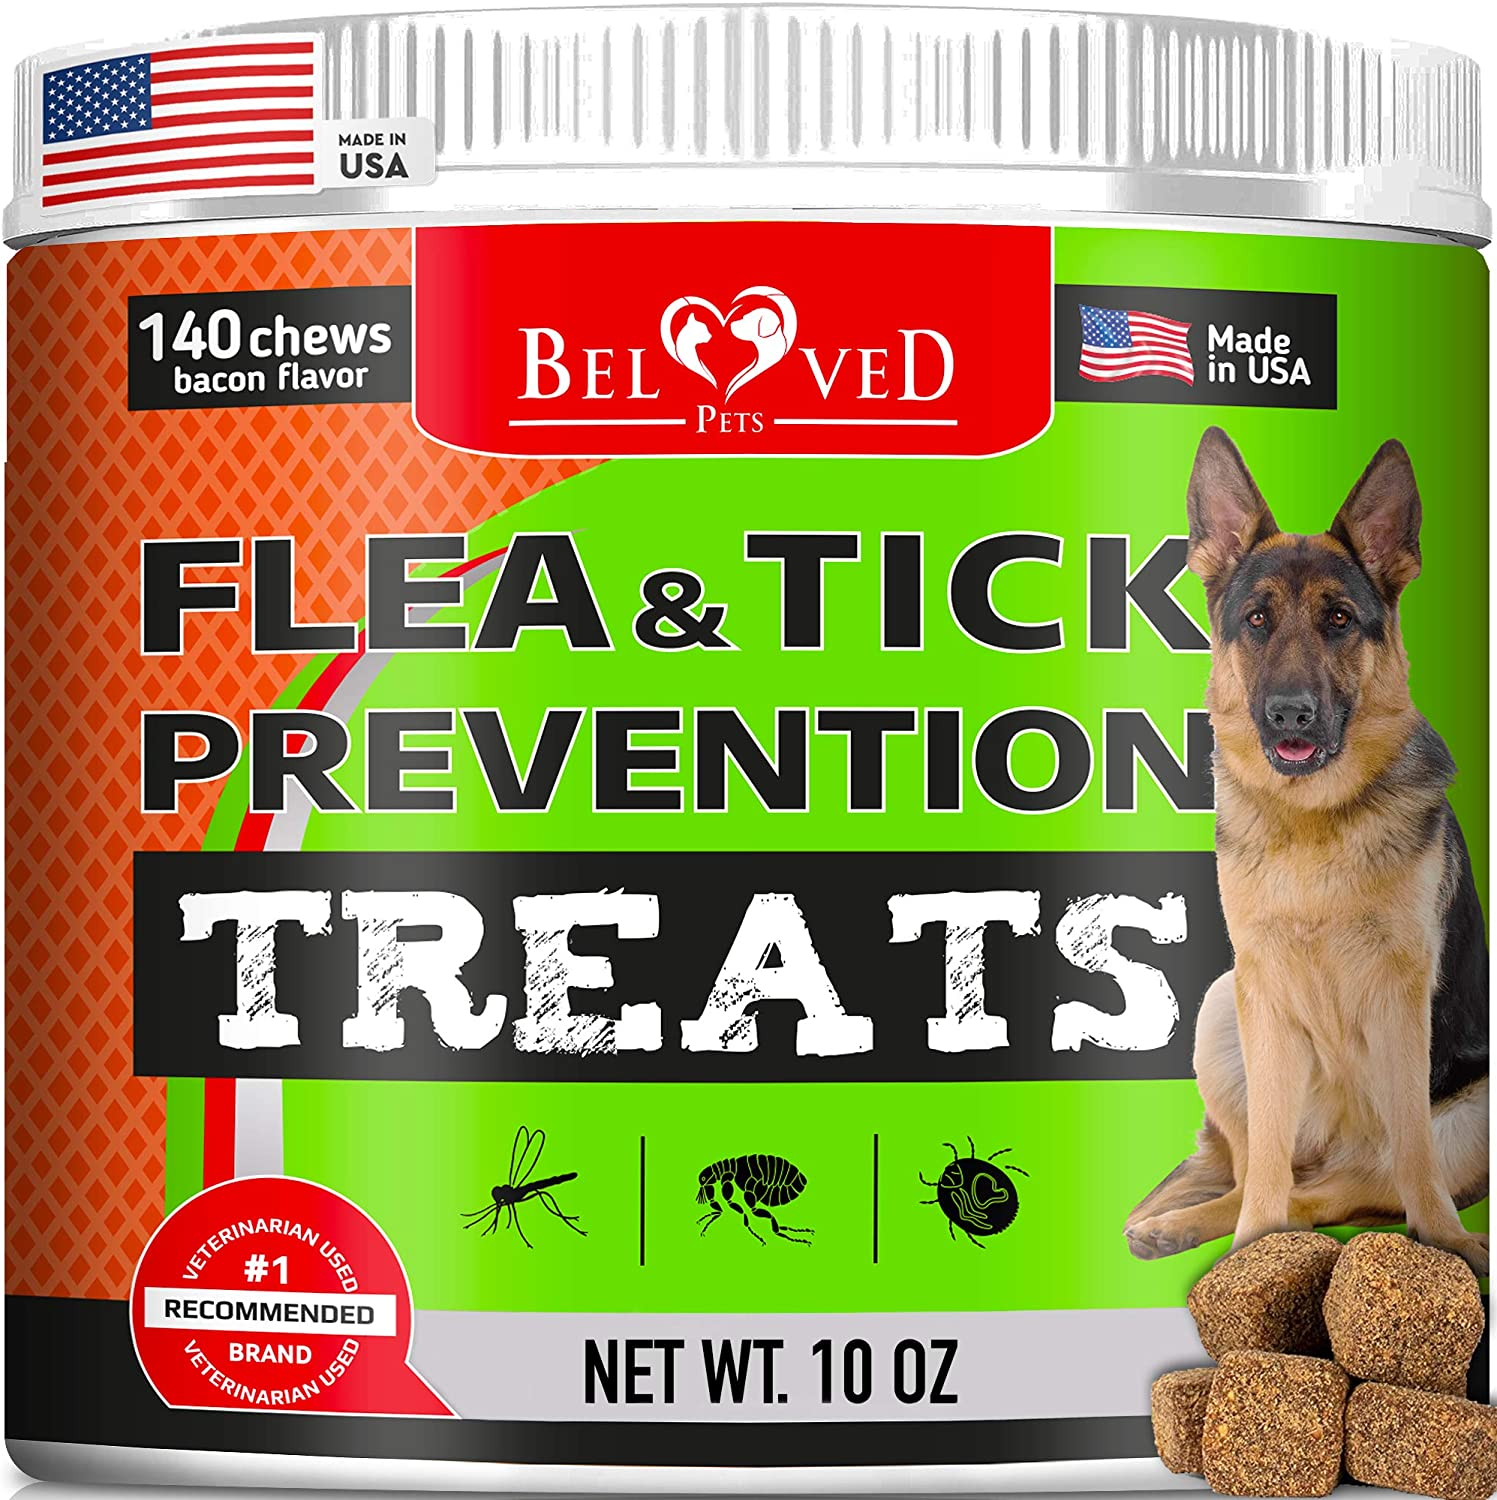 Beloved Pets Flea and Tick Control Treats for Dogs - Flea Prevention Soft Chews - Natural Tick Repellent Supplement - Made in USA - 140 Ct Bacon Flavor